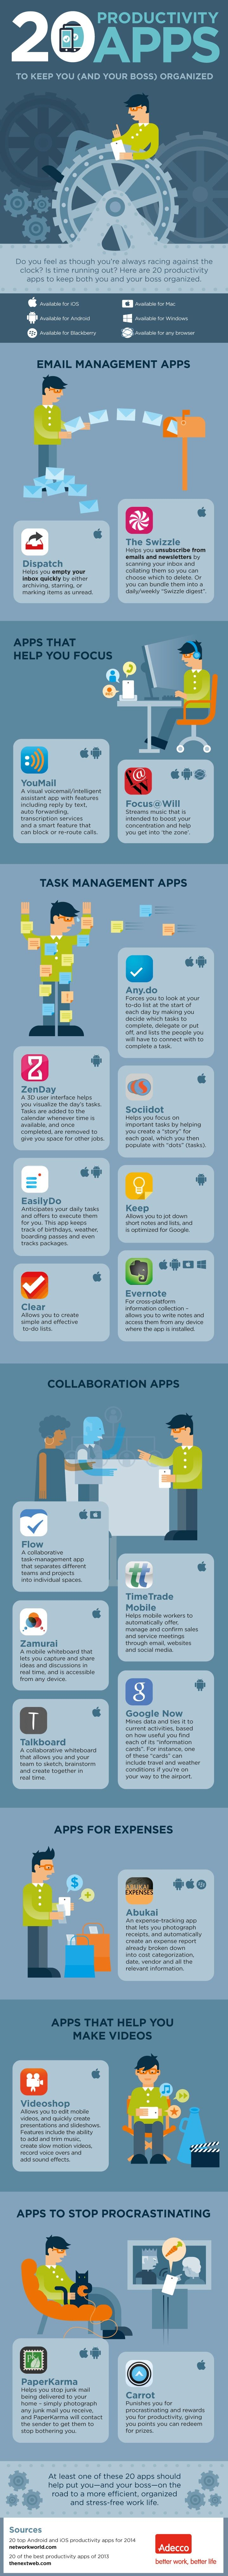 20 Productivity Apps to Keep You Organized #ios #apps #edtech  JAMSO is your goal setting, KPI management  and business intelligence specialist. http://www.jamsovaluesmarter.com